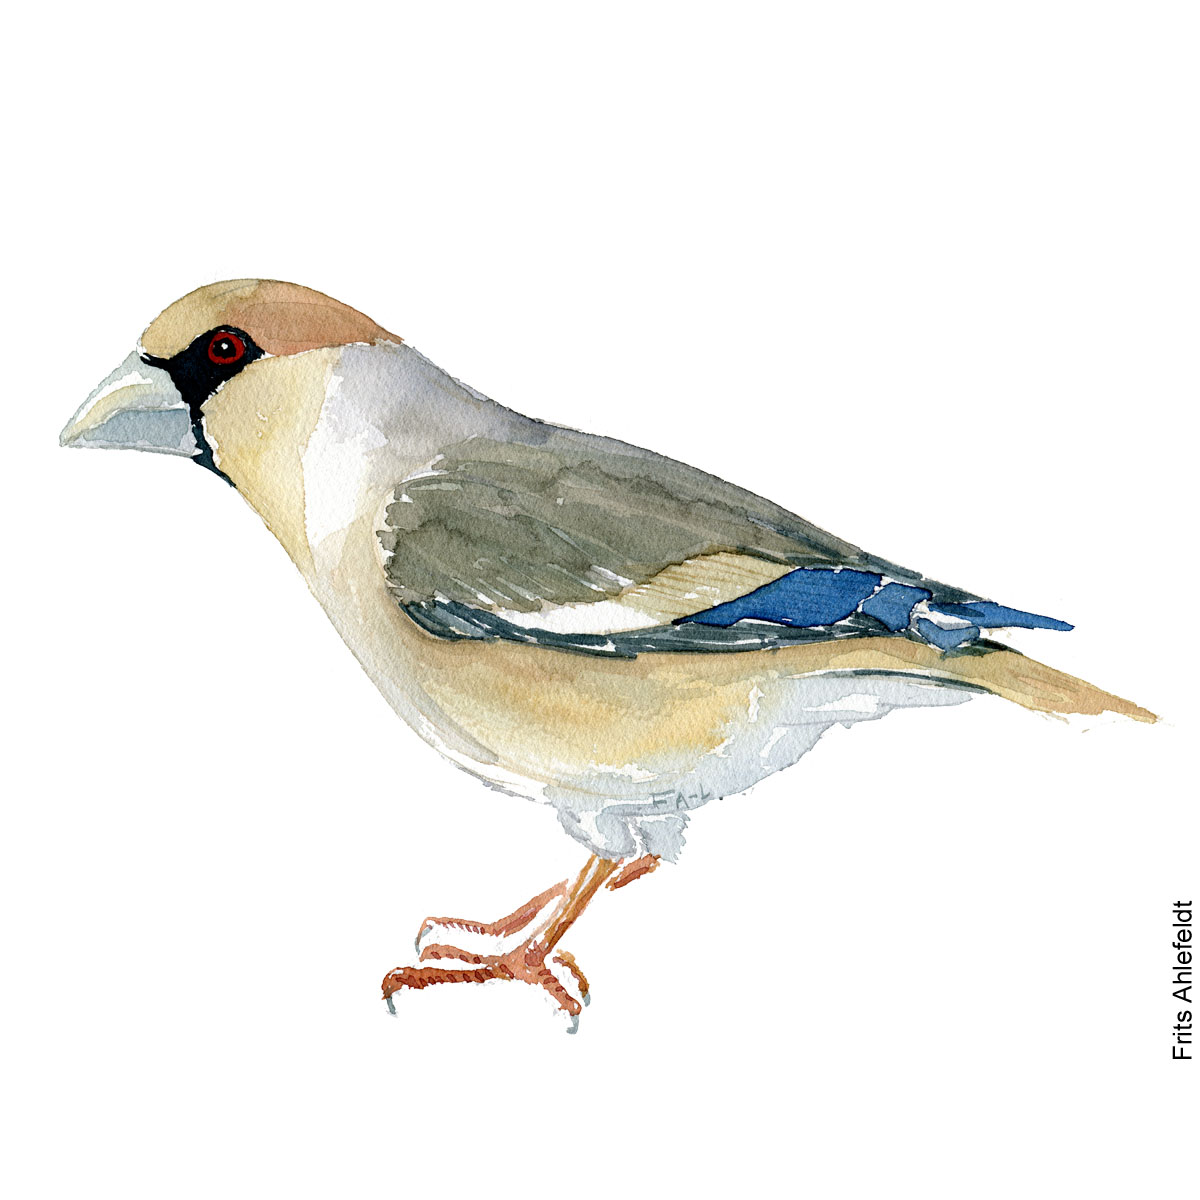 Kernebider - Hawfinch bird watercolor painting. Artwork by Frits Ahlefeldt. Fugle akvarel